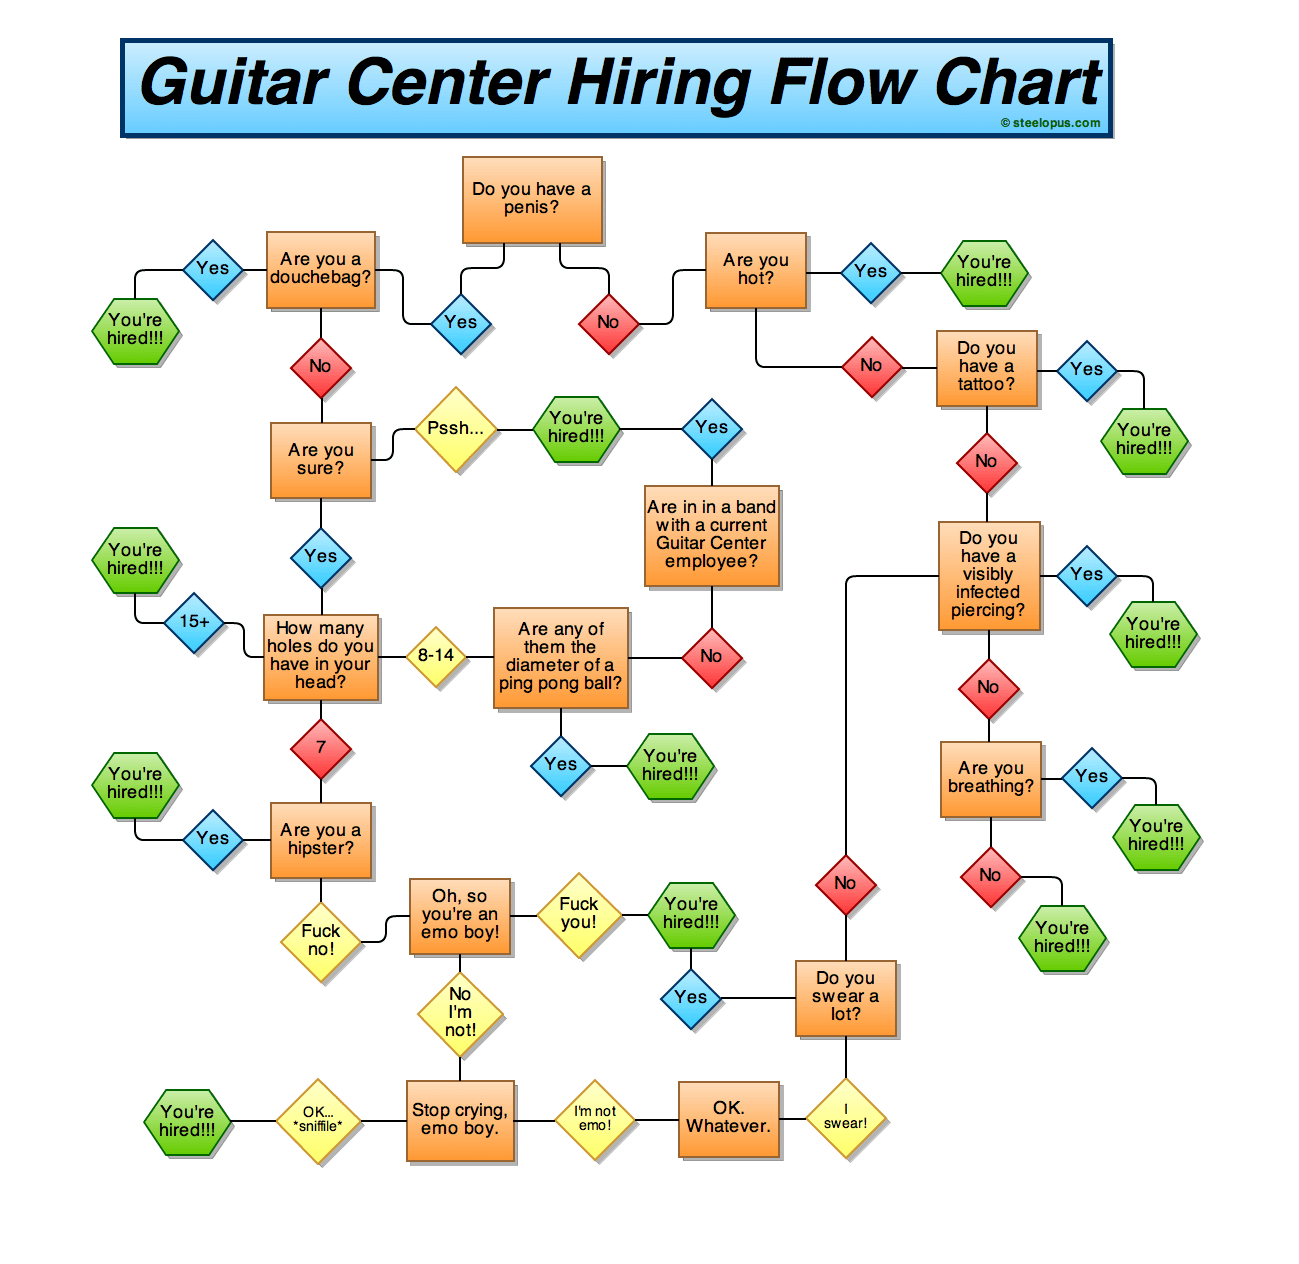 hight resolution of high res guitar center hiring flow chart bysteelopus i uncovered this secret guitar center document